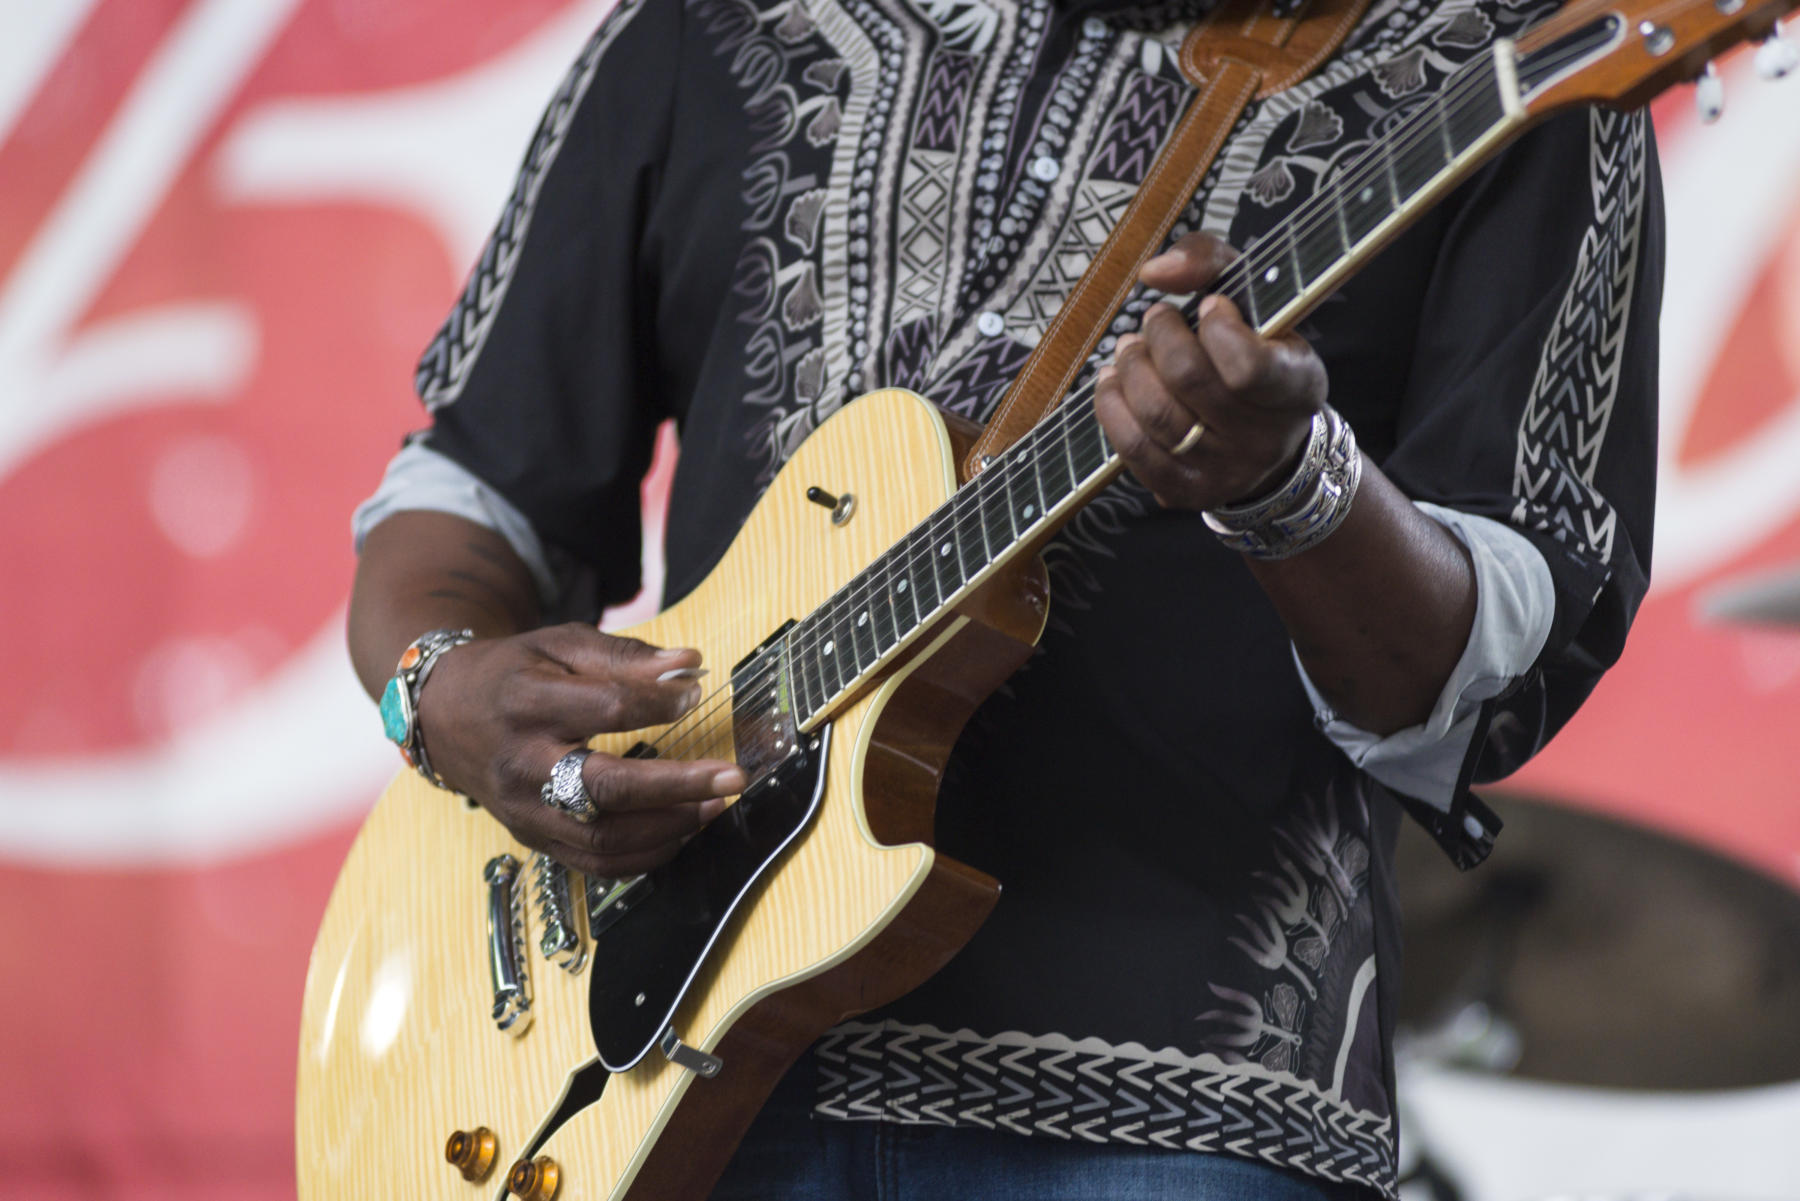 DCASE Blues Music Festival Blues Fest 2018 in Millennium Park Budweiser Crossroads Stage Joe Louis Walker performance